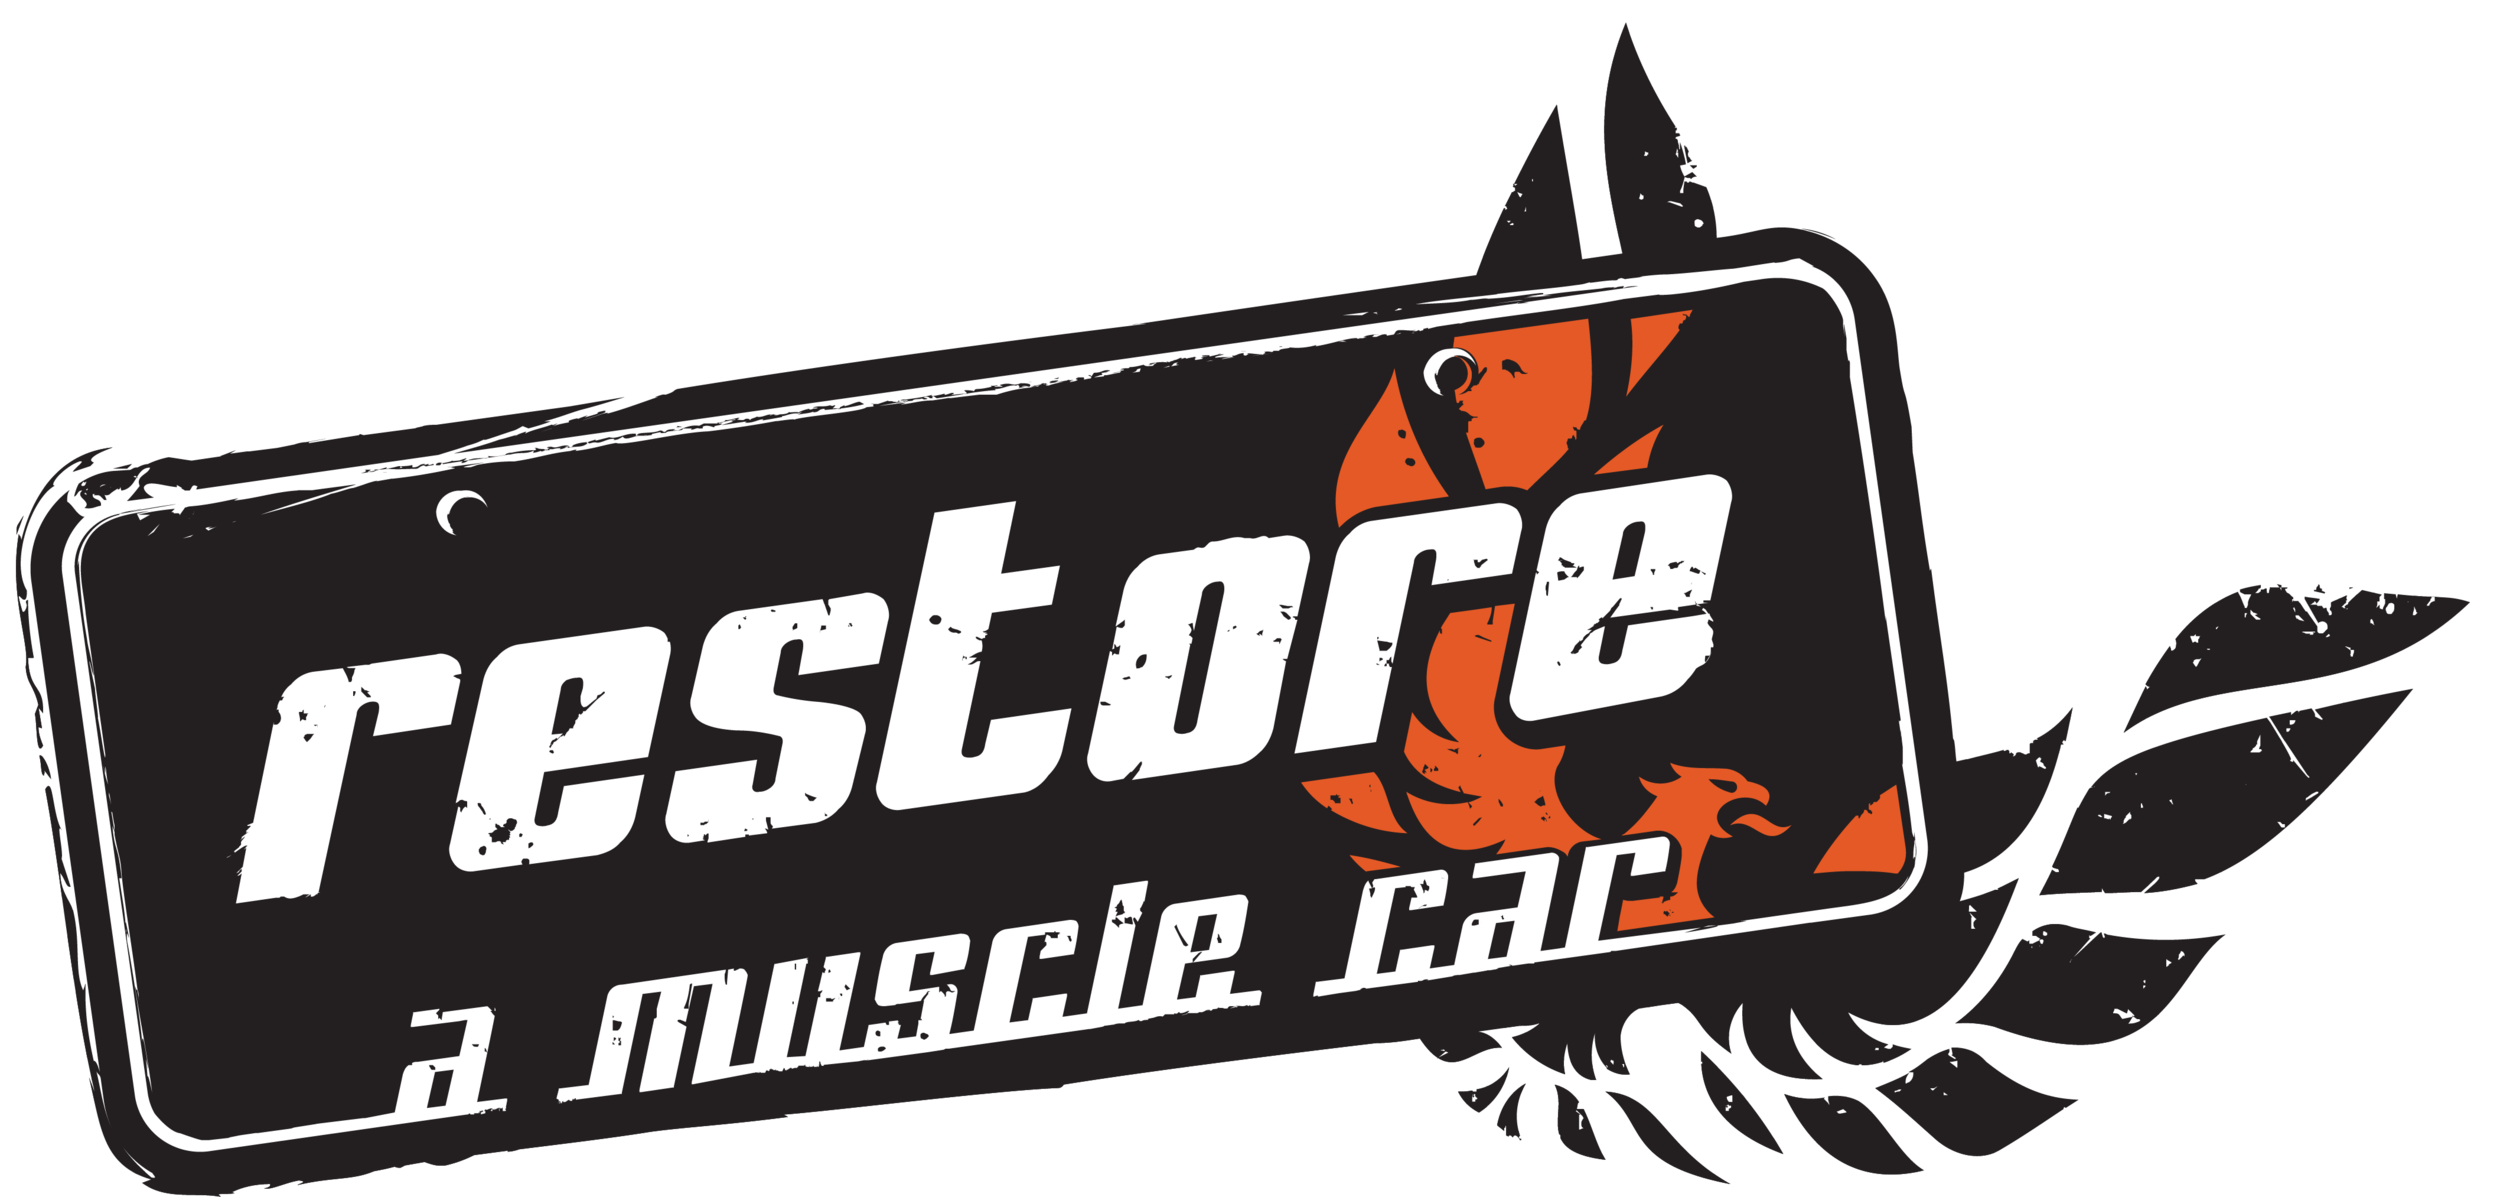 Restore a Muscle Car - Classic car restoration and sales